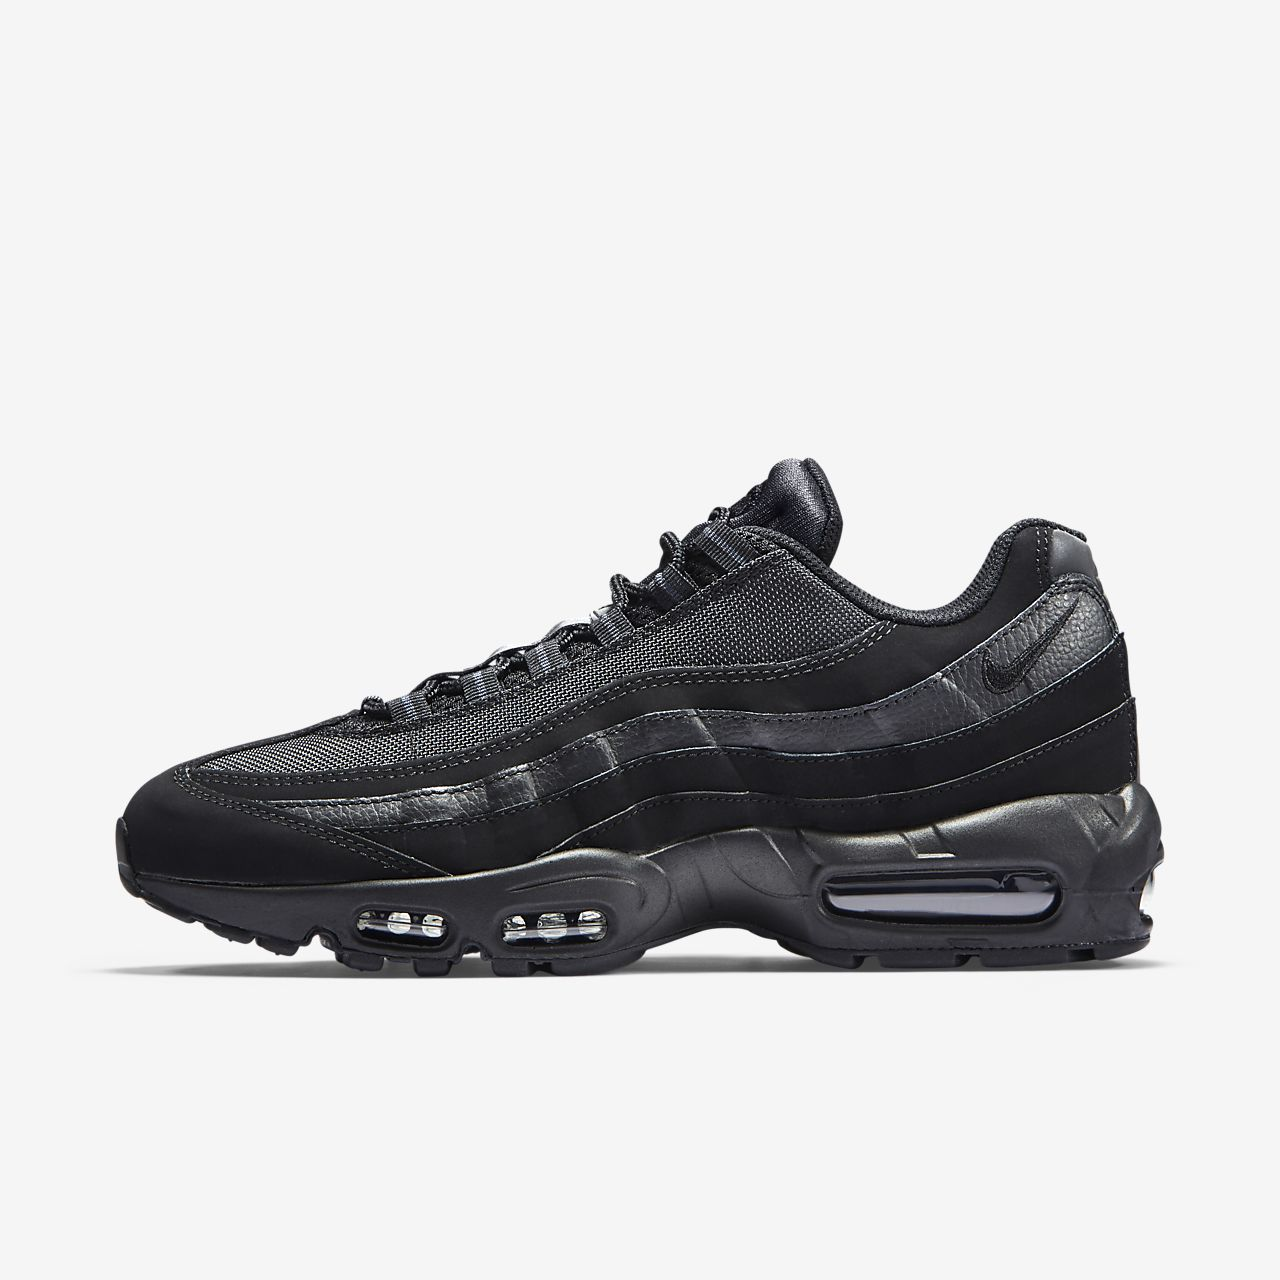 reputable site 58150 701e9 ... sweden nike air max 95 sko til mænd 3a629 a1277